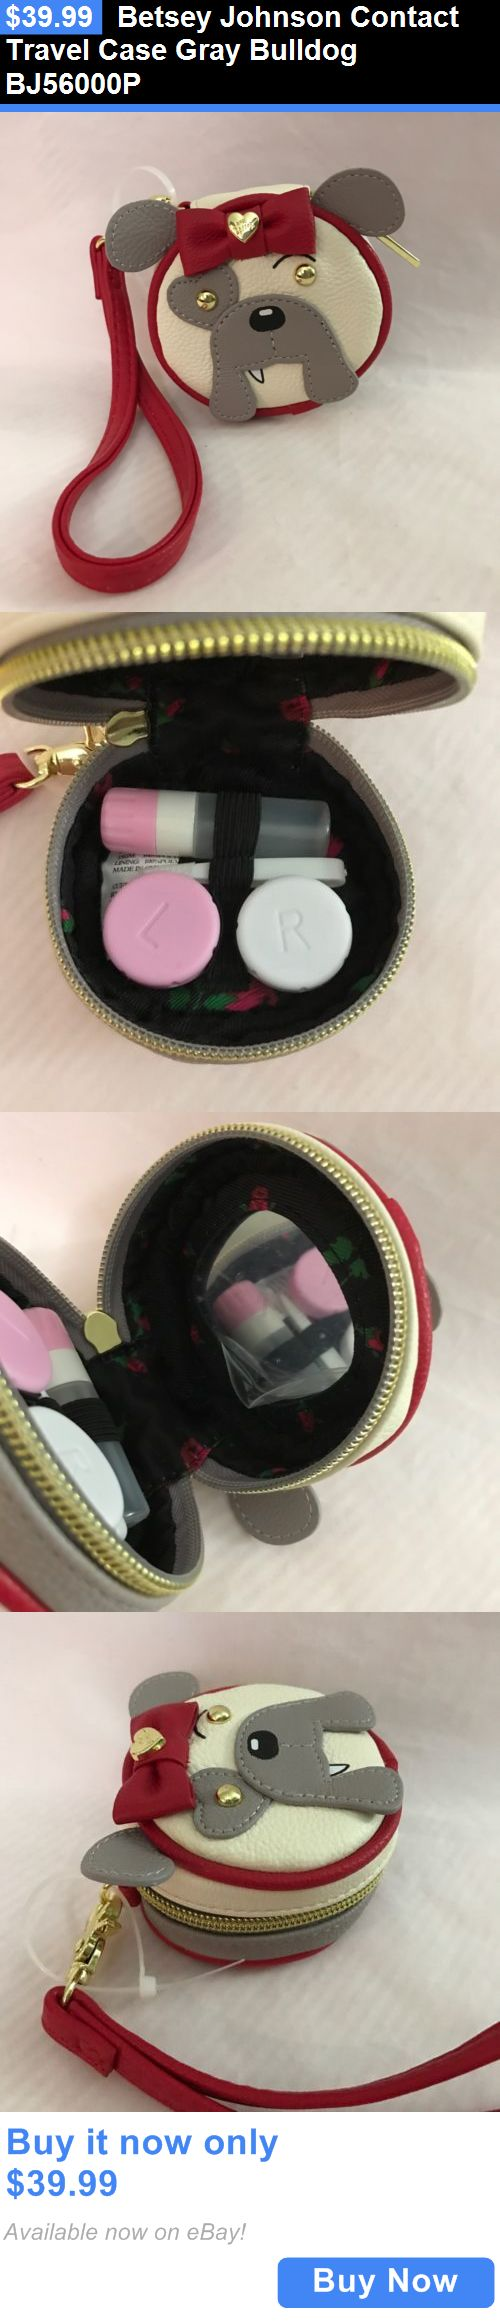 Contact Lens Cases: Betsey Johnson Contact Travel Case Gray Bulldog Bj56000p BUY IT NOW ONLY: $39.99